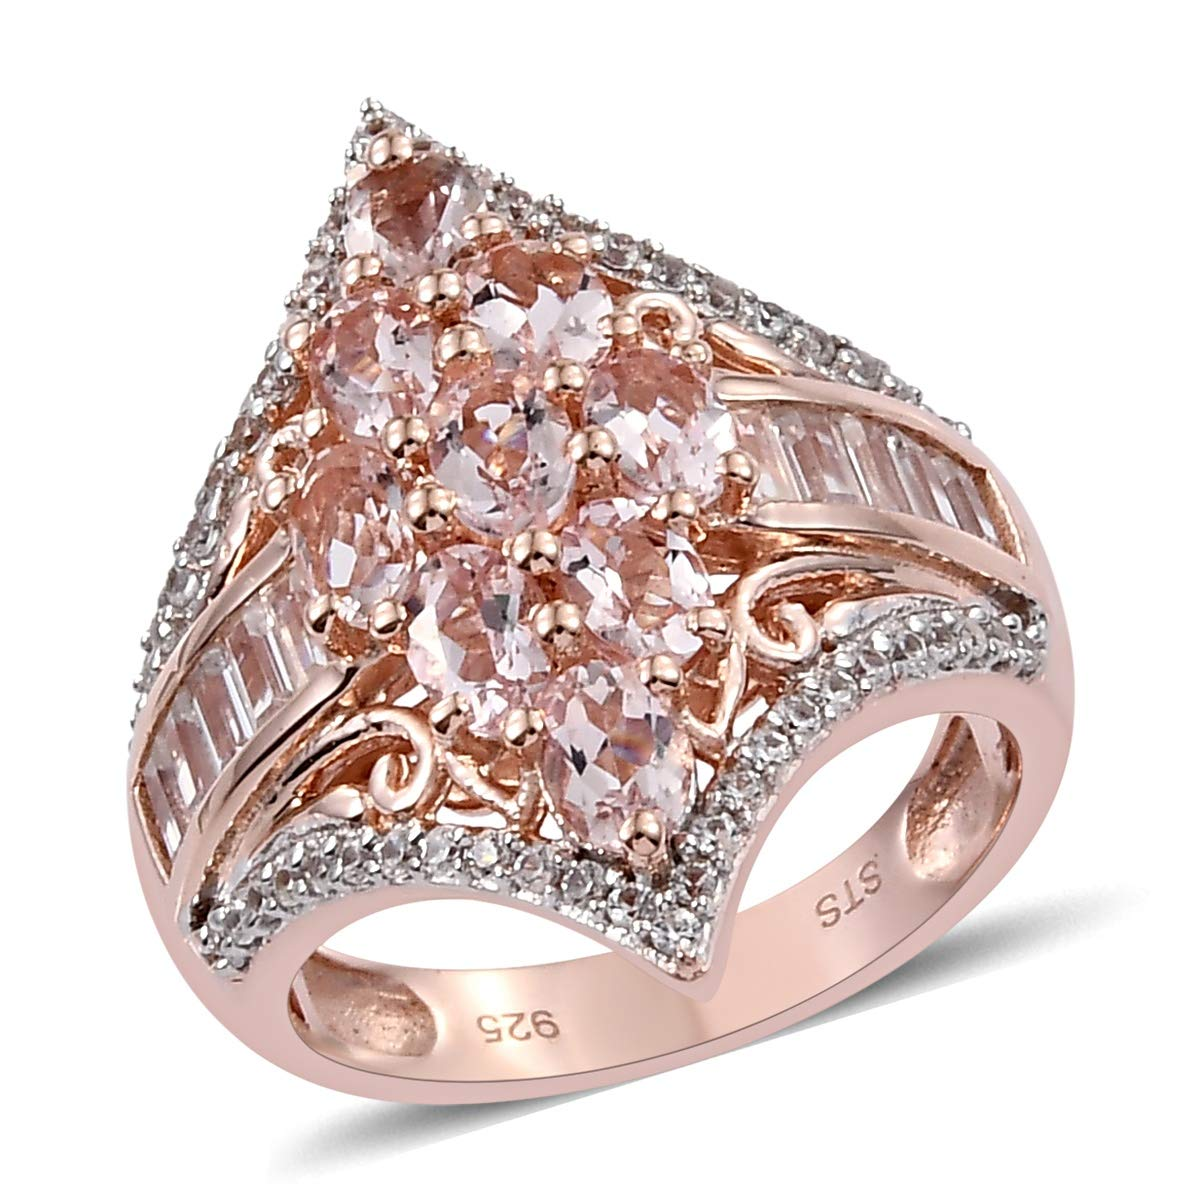 Cluster Ring 925 Sterling Silver Vermeil Rose Gold Pink Morganite Zircon Jewelry for Women Size 6 Ct 2.1 by Shop LC Delivering Joy